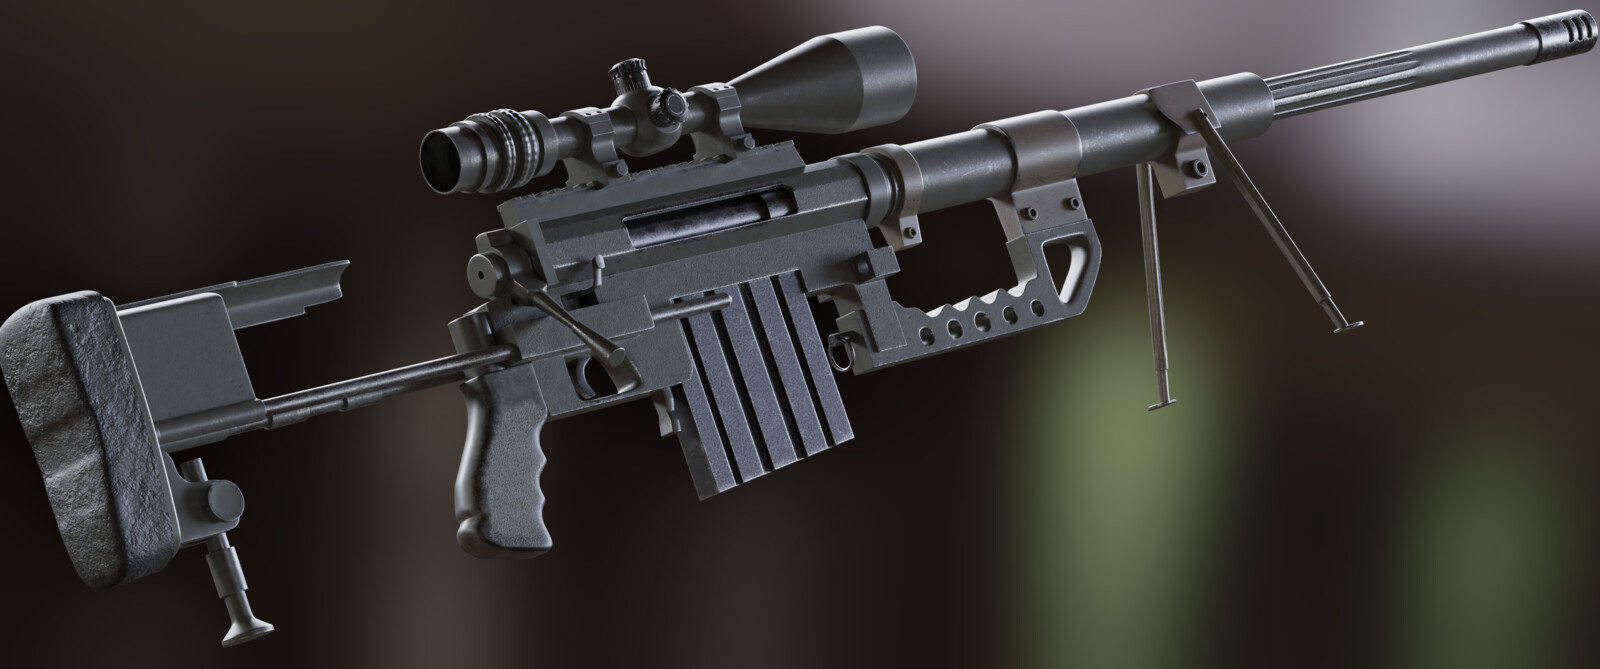 Cheytac m200 sniper rifle - renders part 2